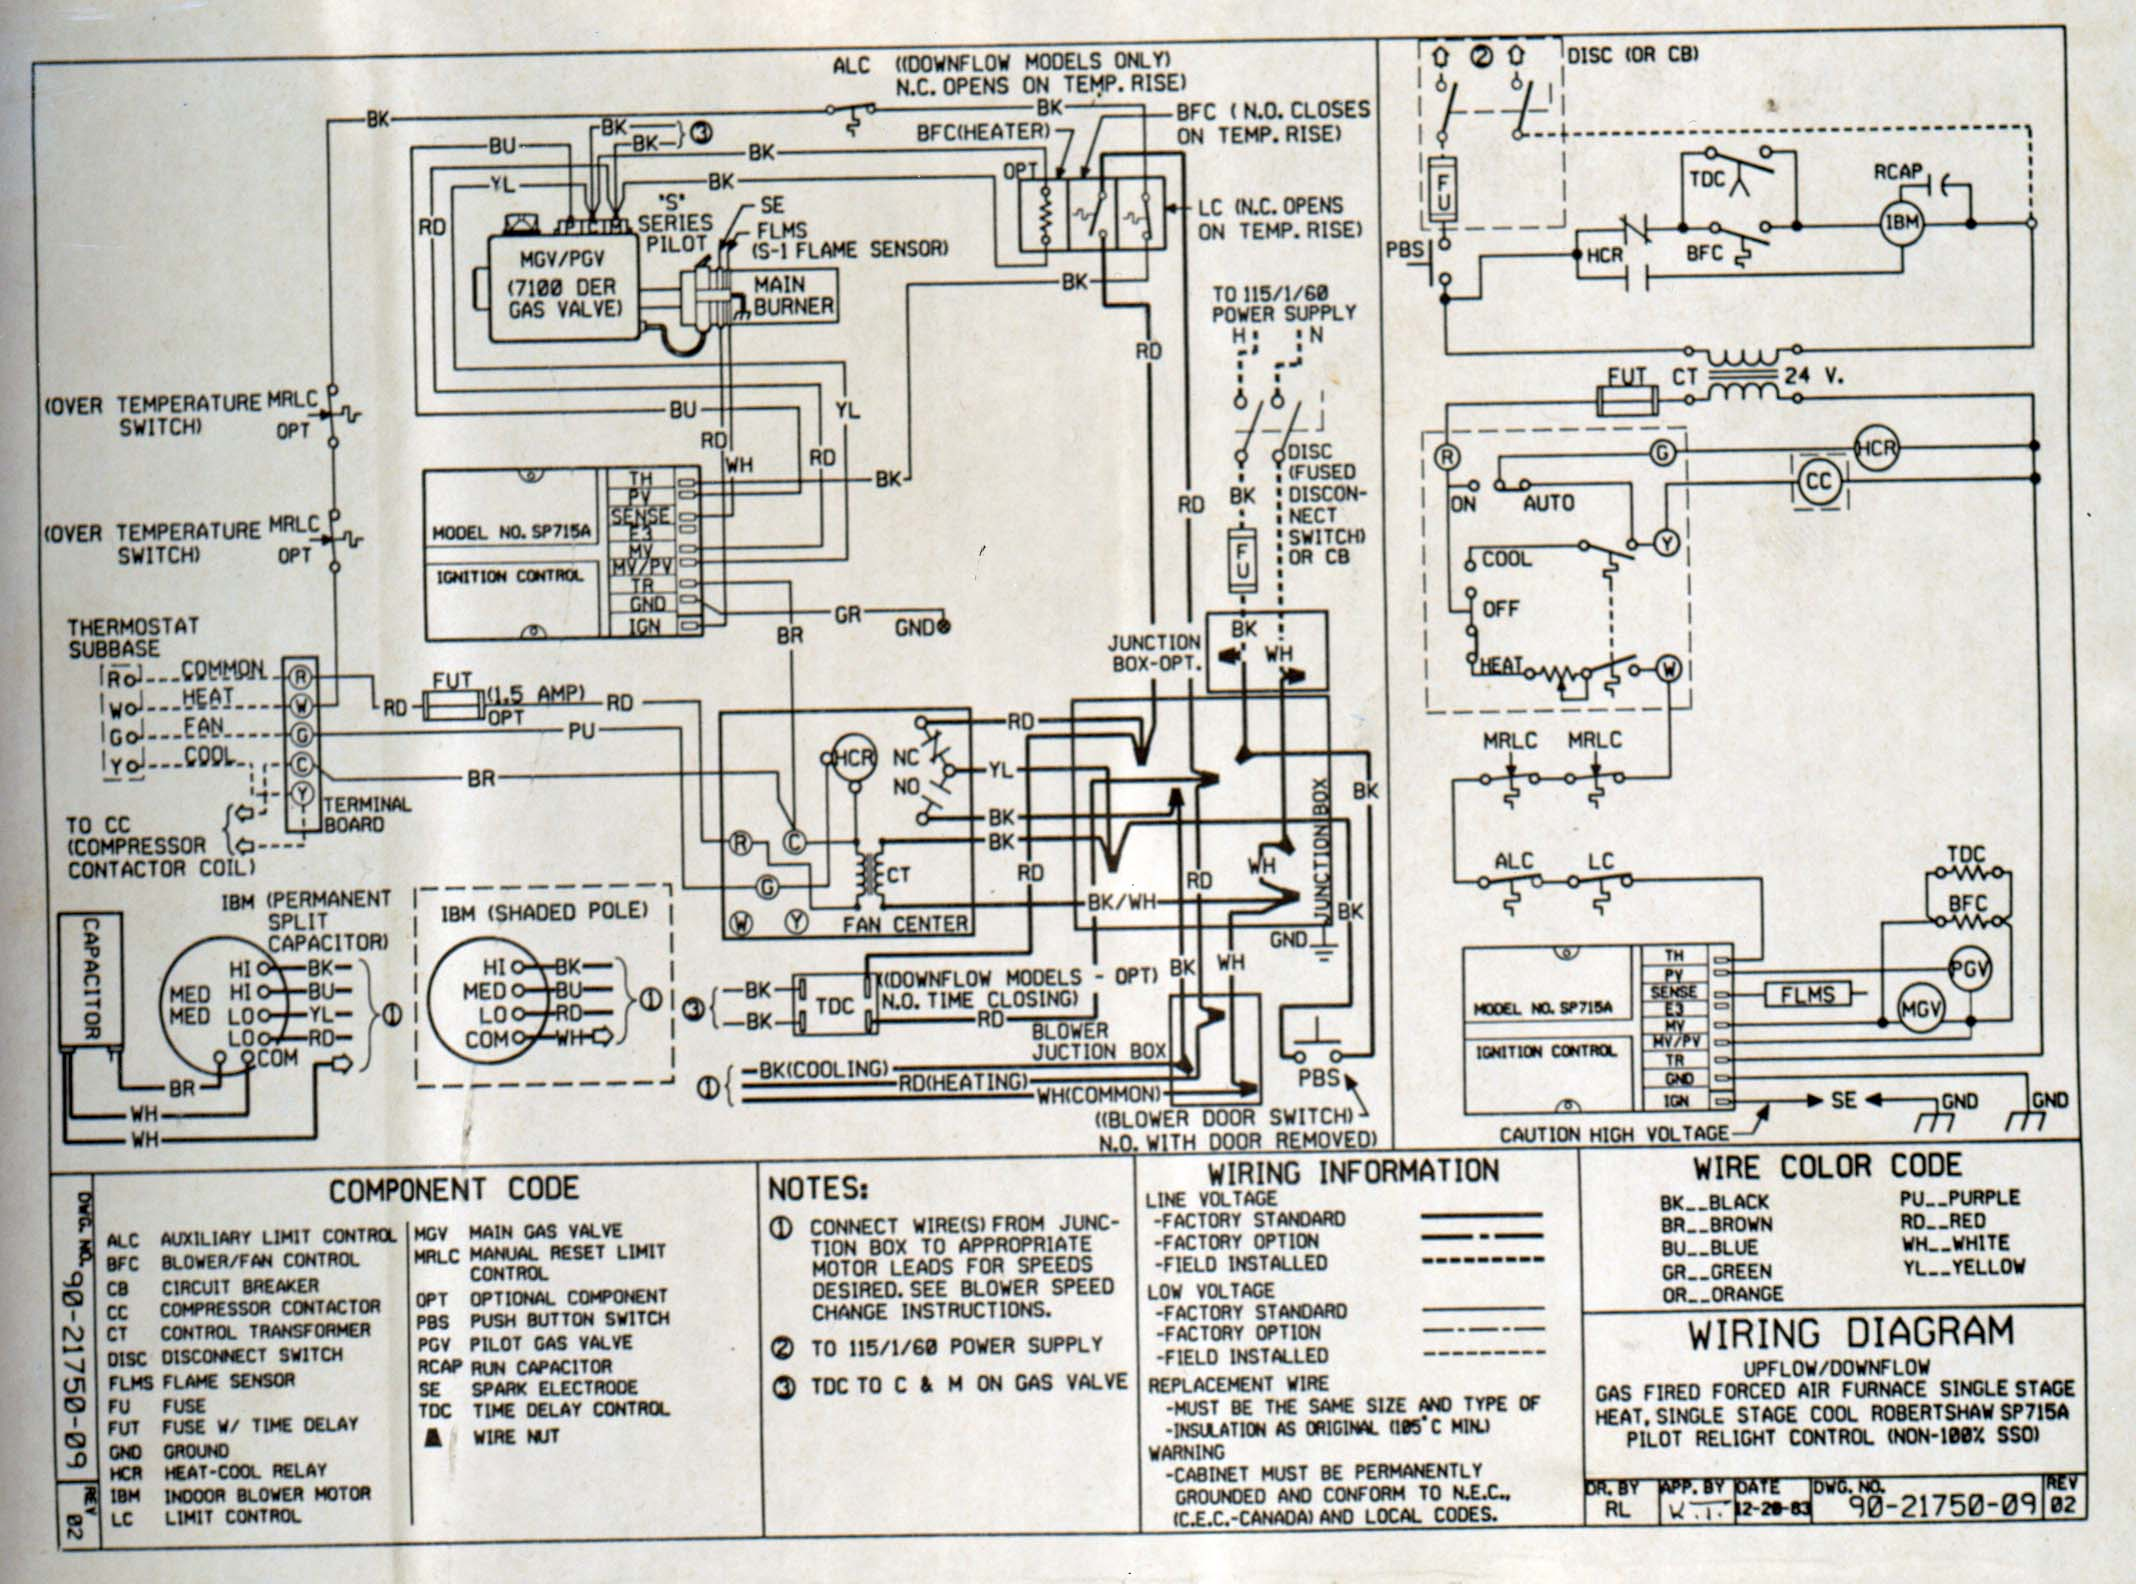 2011 02 27_064544_wiring york control board wiring diagram electric motor control circuit electric furnace fan relay wiring diagram at eliteediting.co